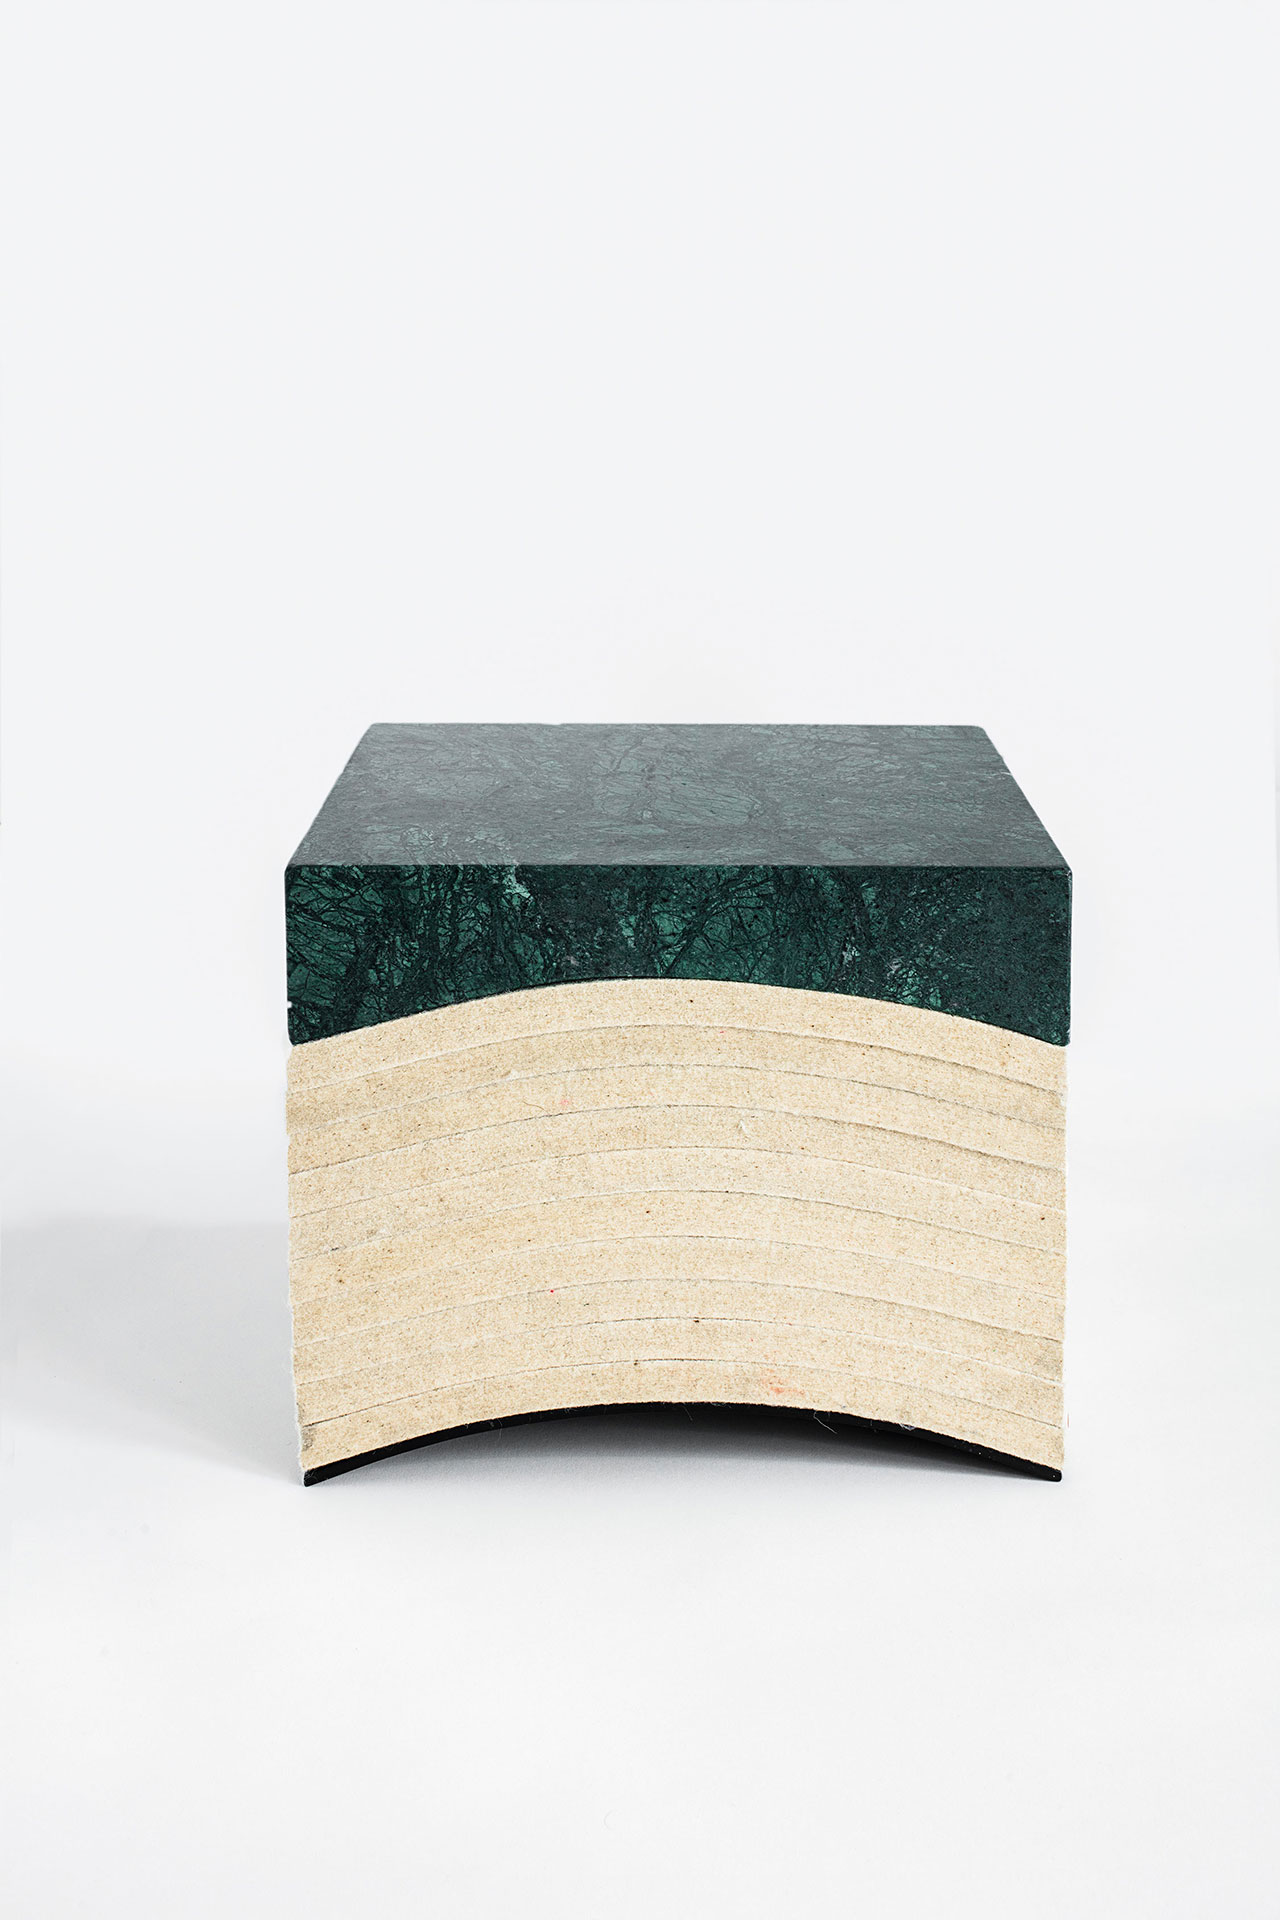 Objects of Common Interest, Layer Stool, 2016. Marble, Wool Felt, Steel. Photo by Matthieu Salvaing.